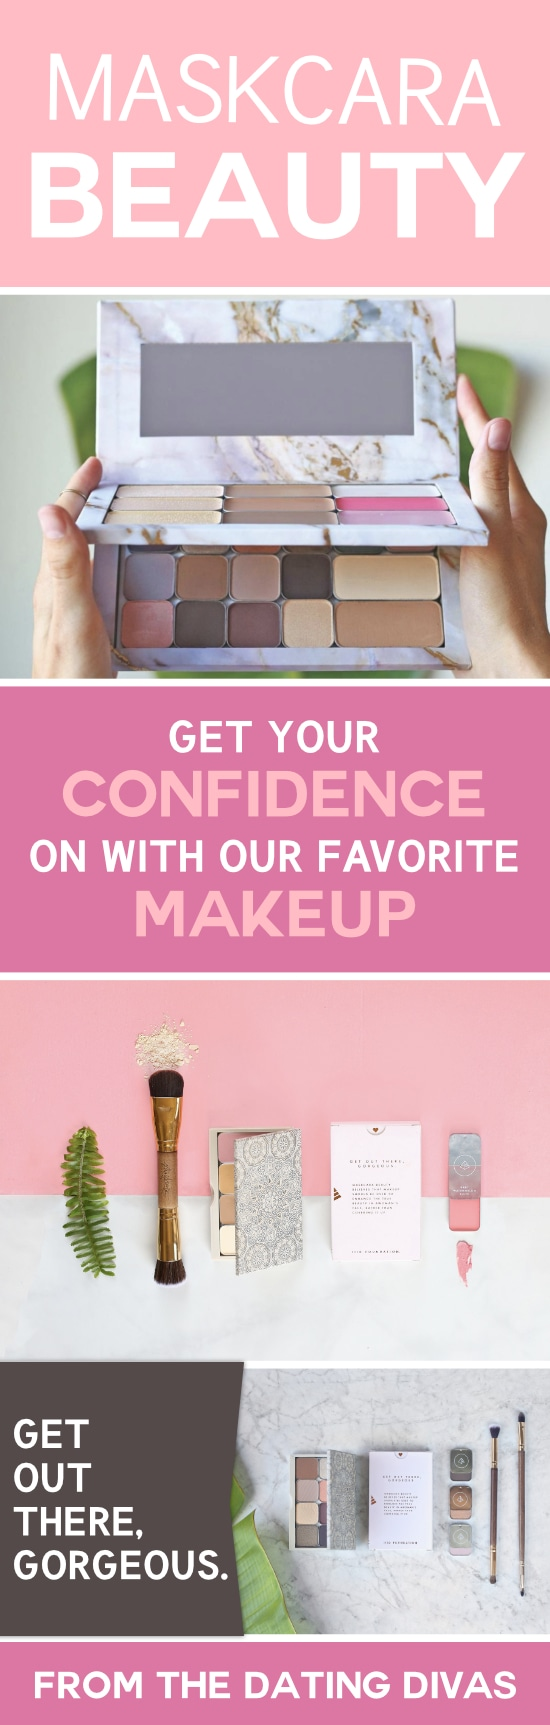 It's time to get your confidence on with Maskcara Beauty!